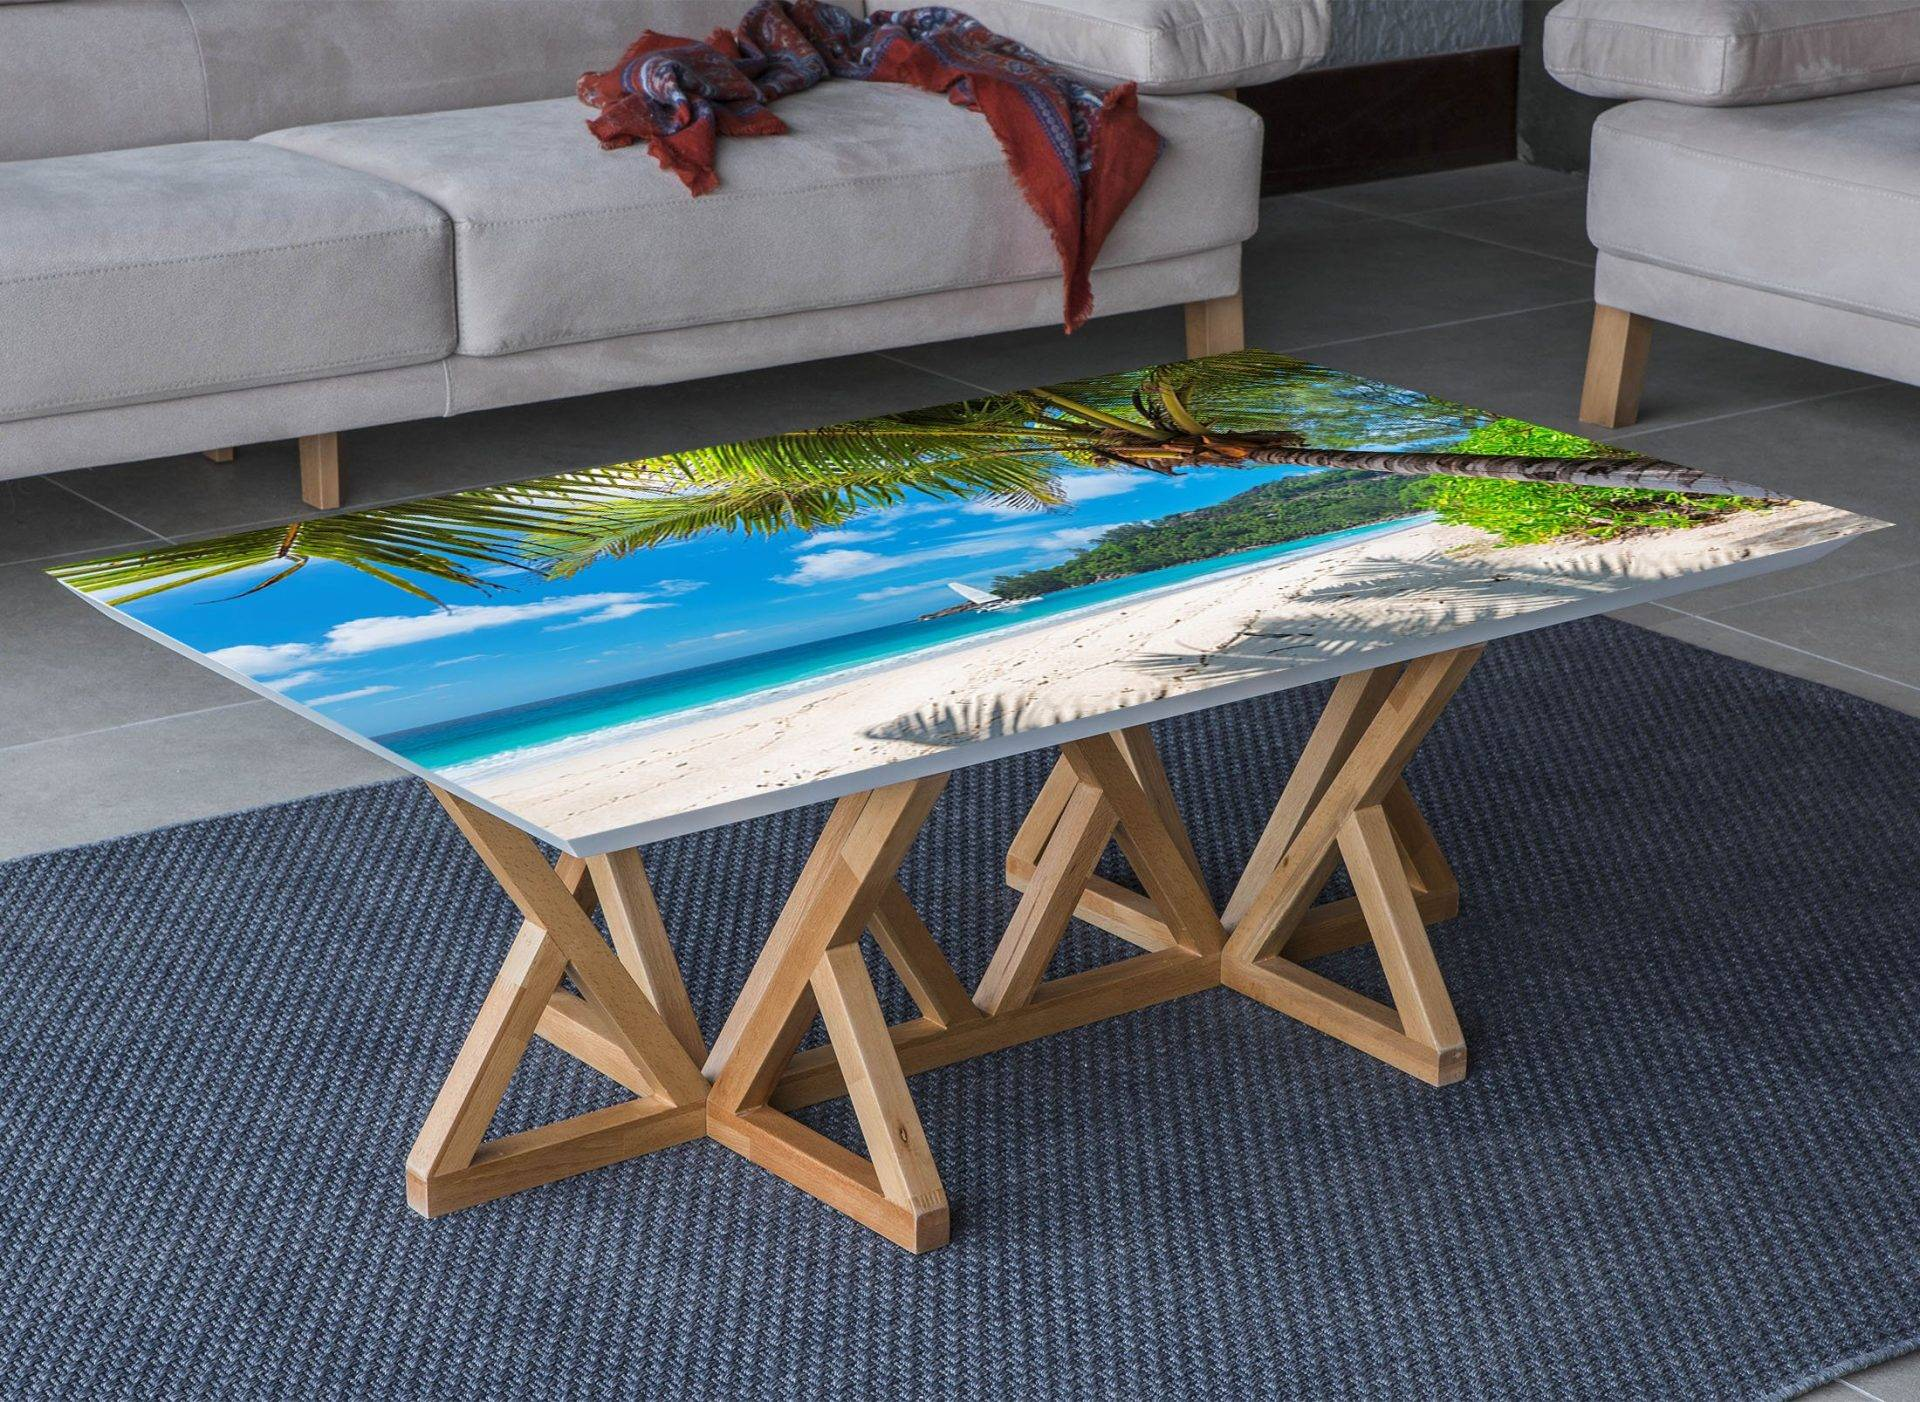 Summer Beach Vacation Laminated Vinyl Cover Self-Adhesive for Desk and Tables